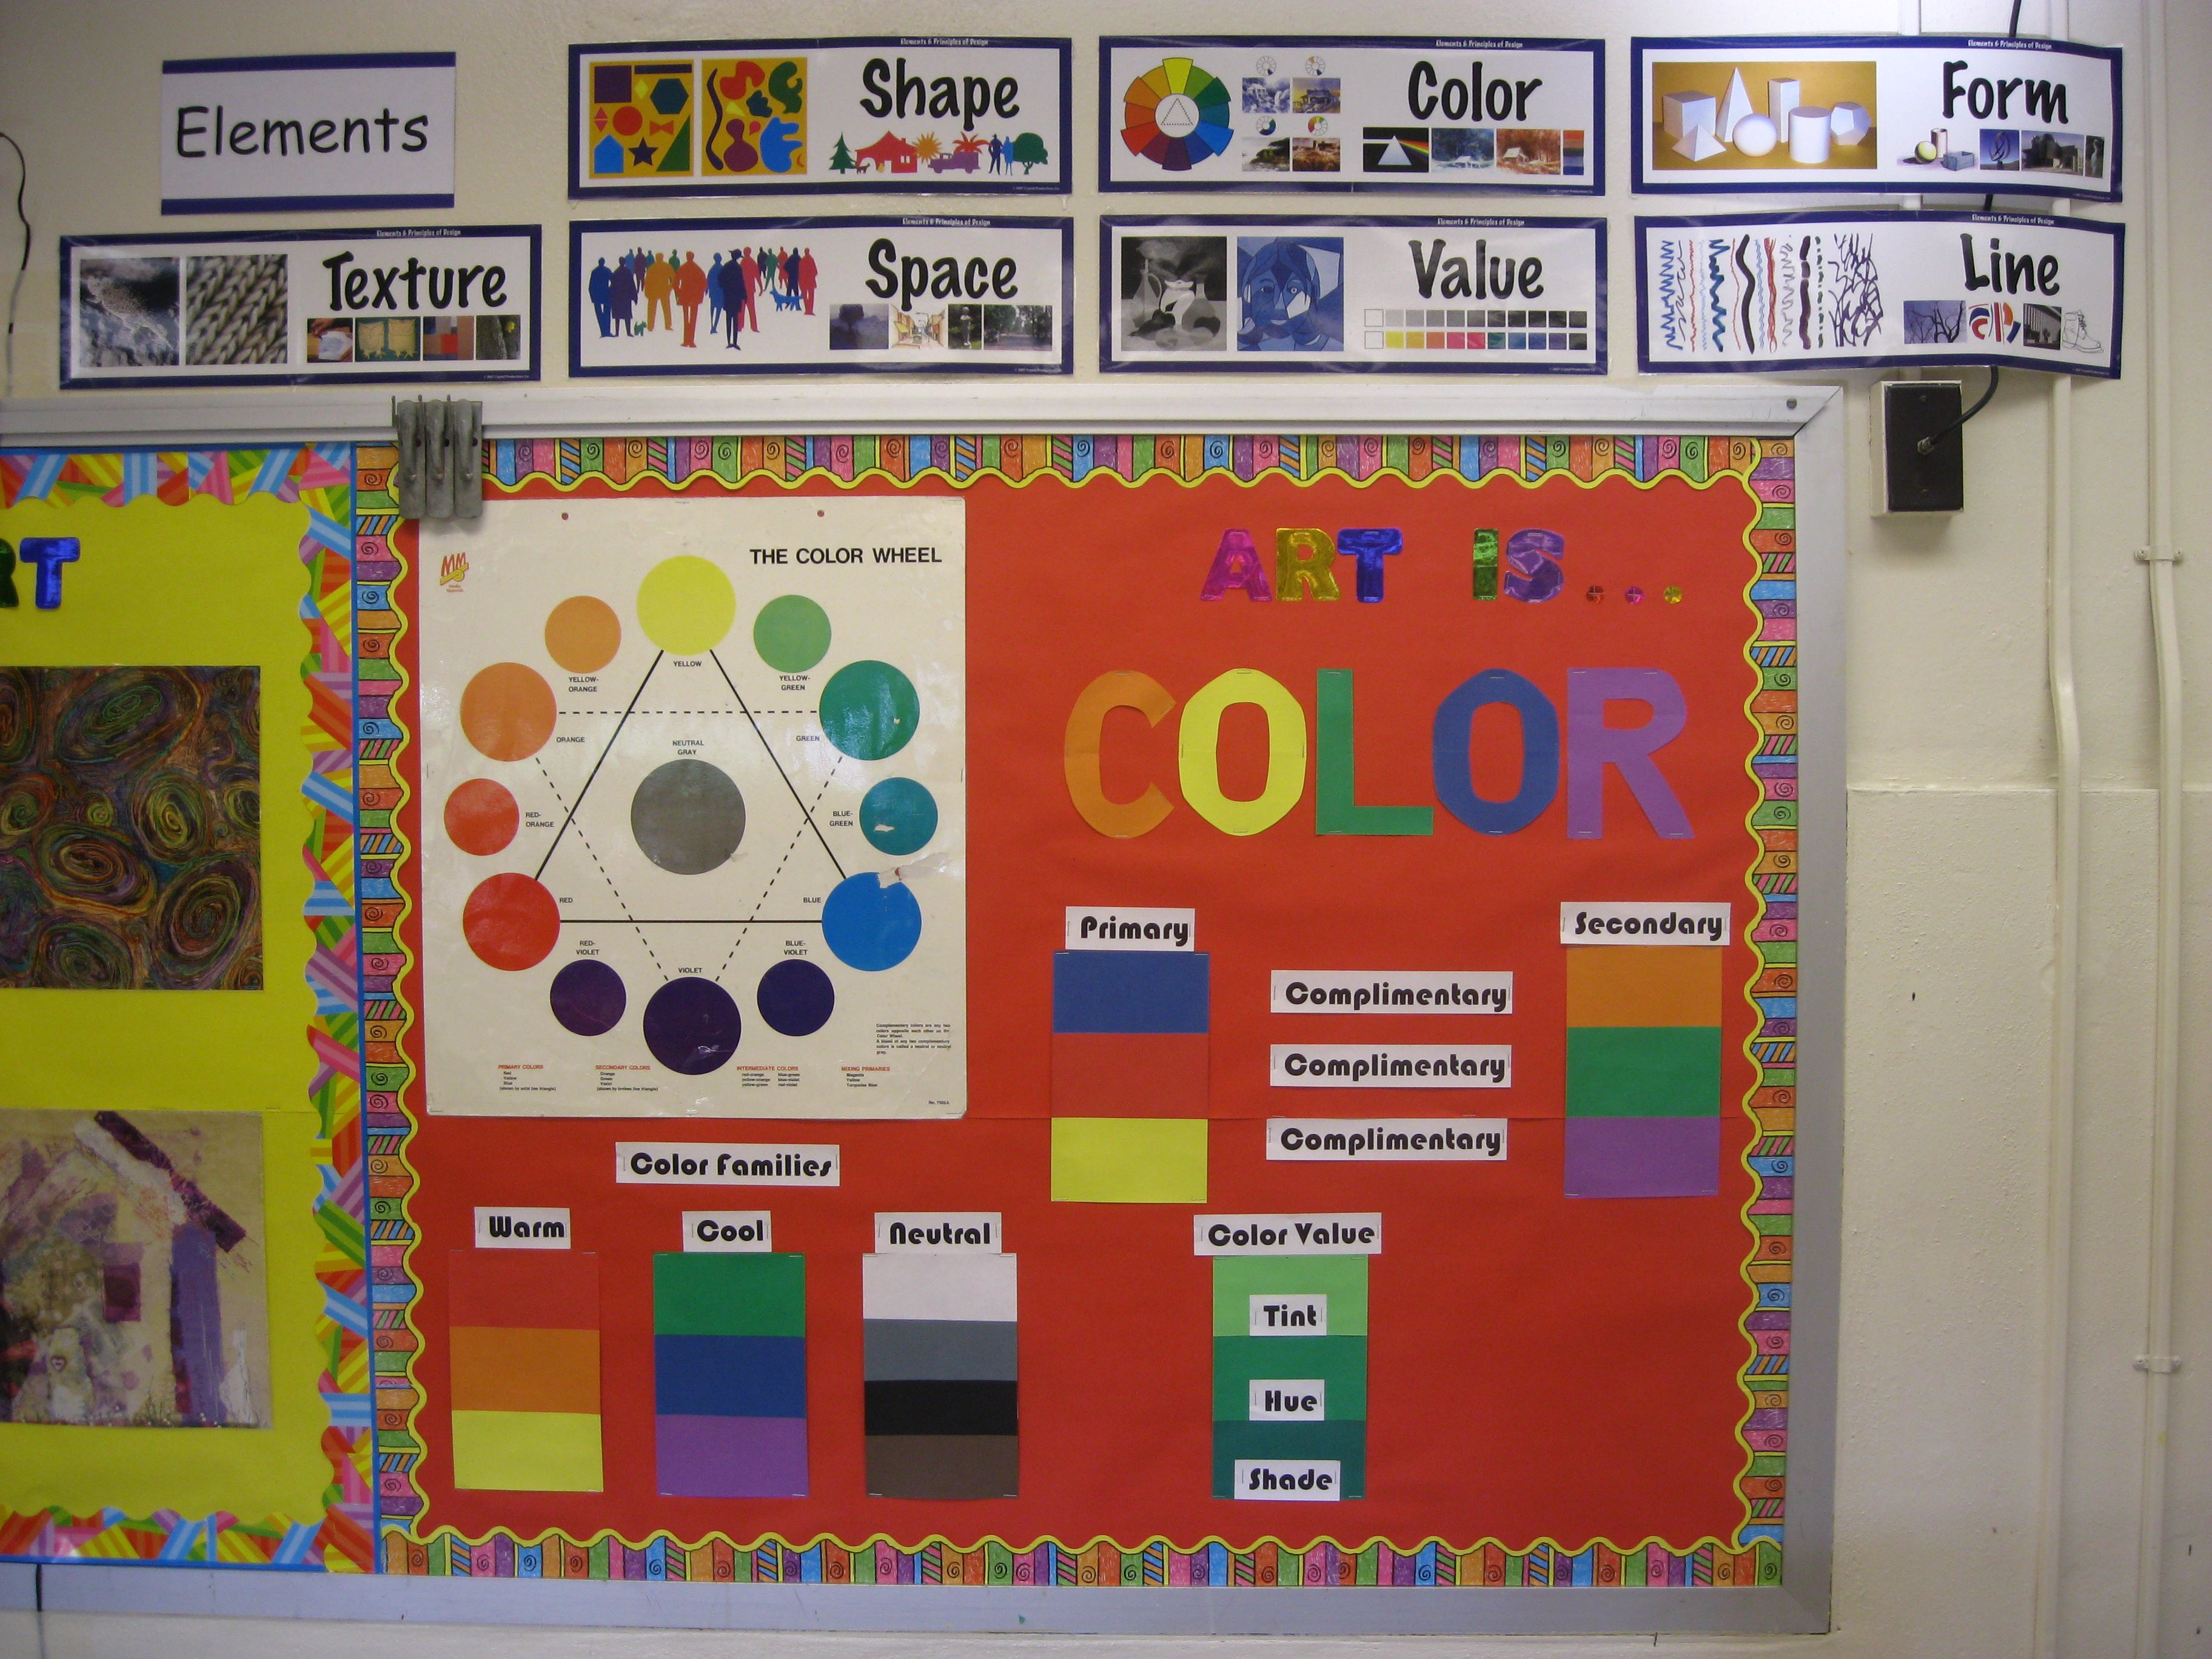 Line Art Lessons For Elementary : Organization art room tour bulletin board and